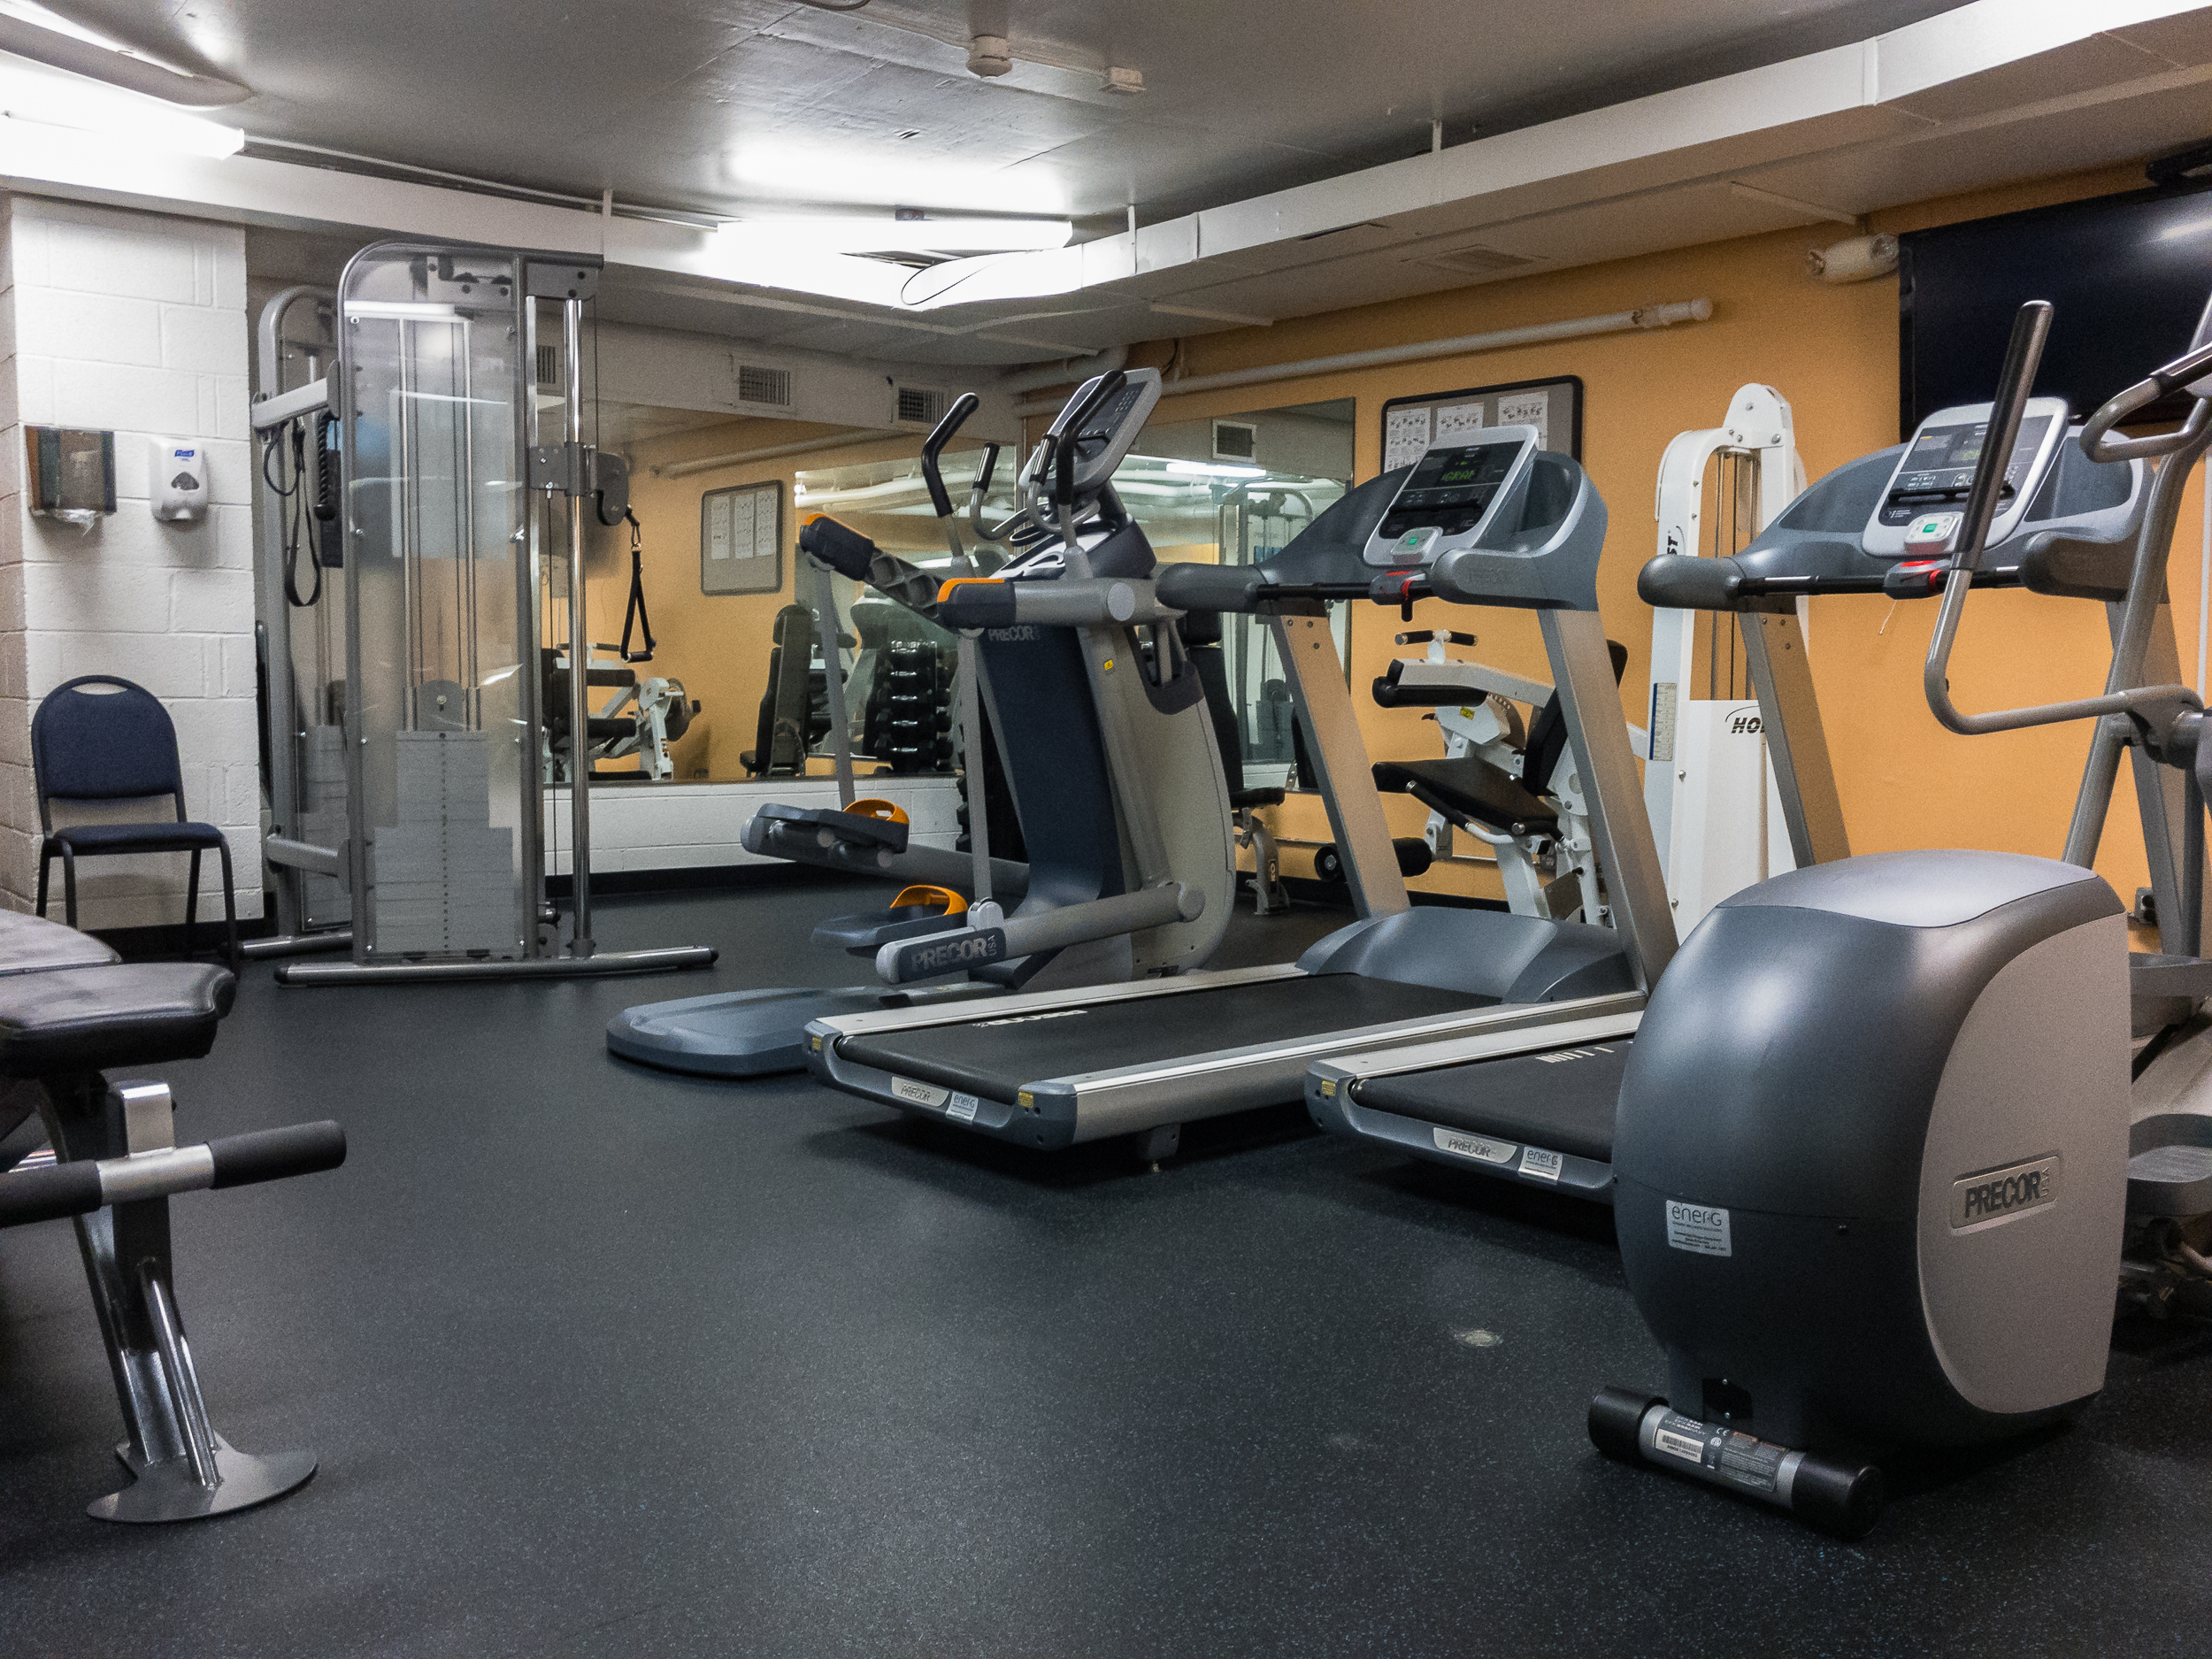 12_Watergate West Fitness Room 01.jpg